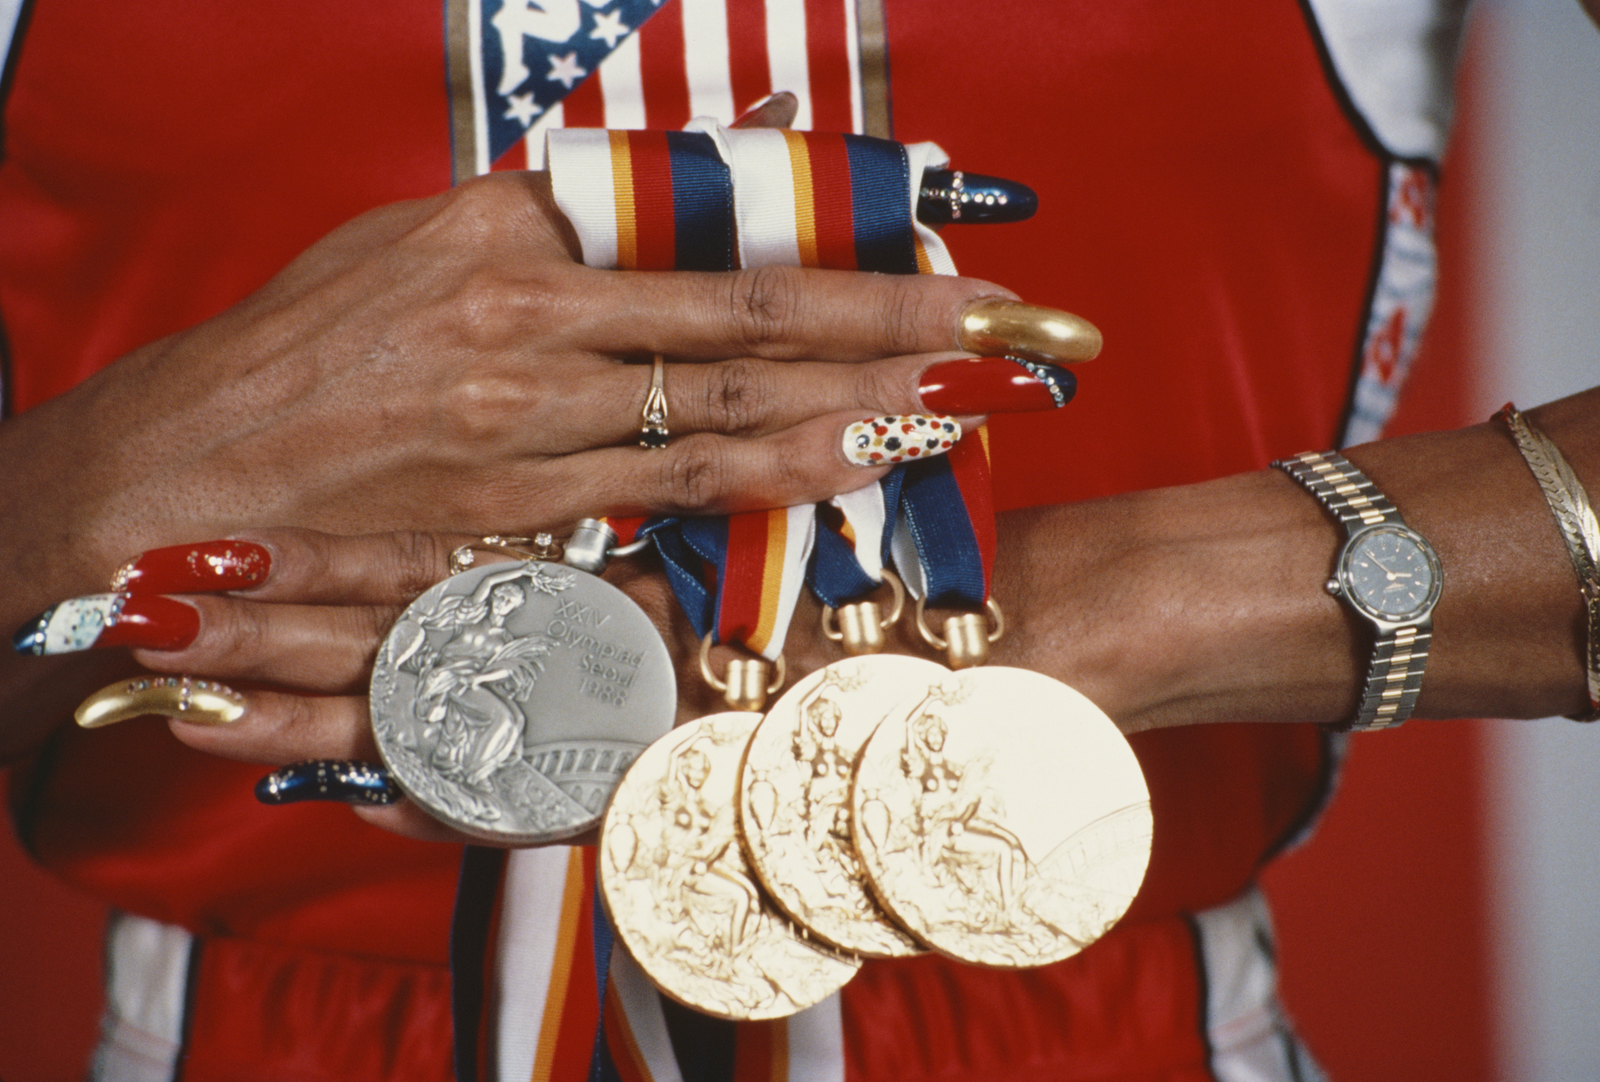 Florence Griffith Joyner nails it at the 1988 Olympic Games. (Tony Duffy/Allsport via Getty Images)